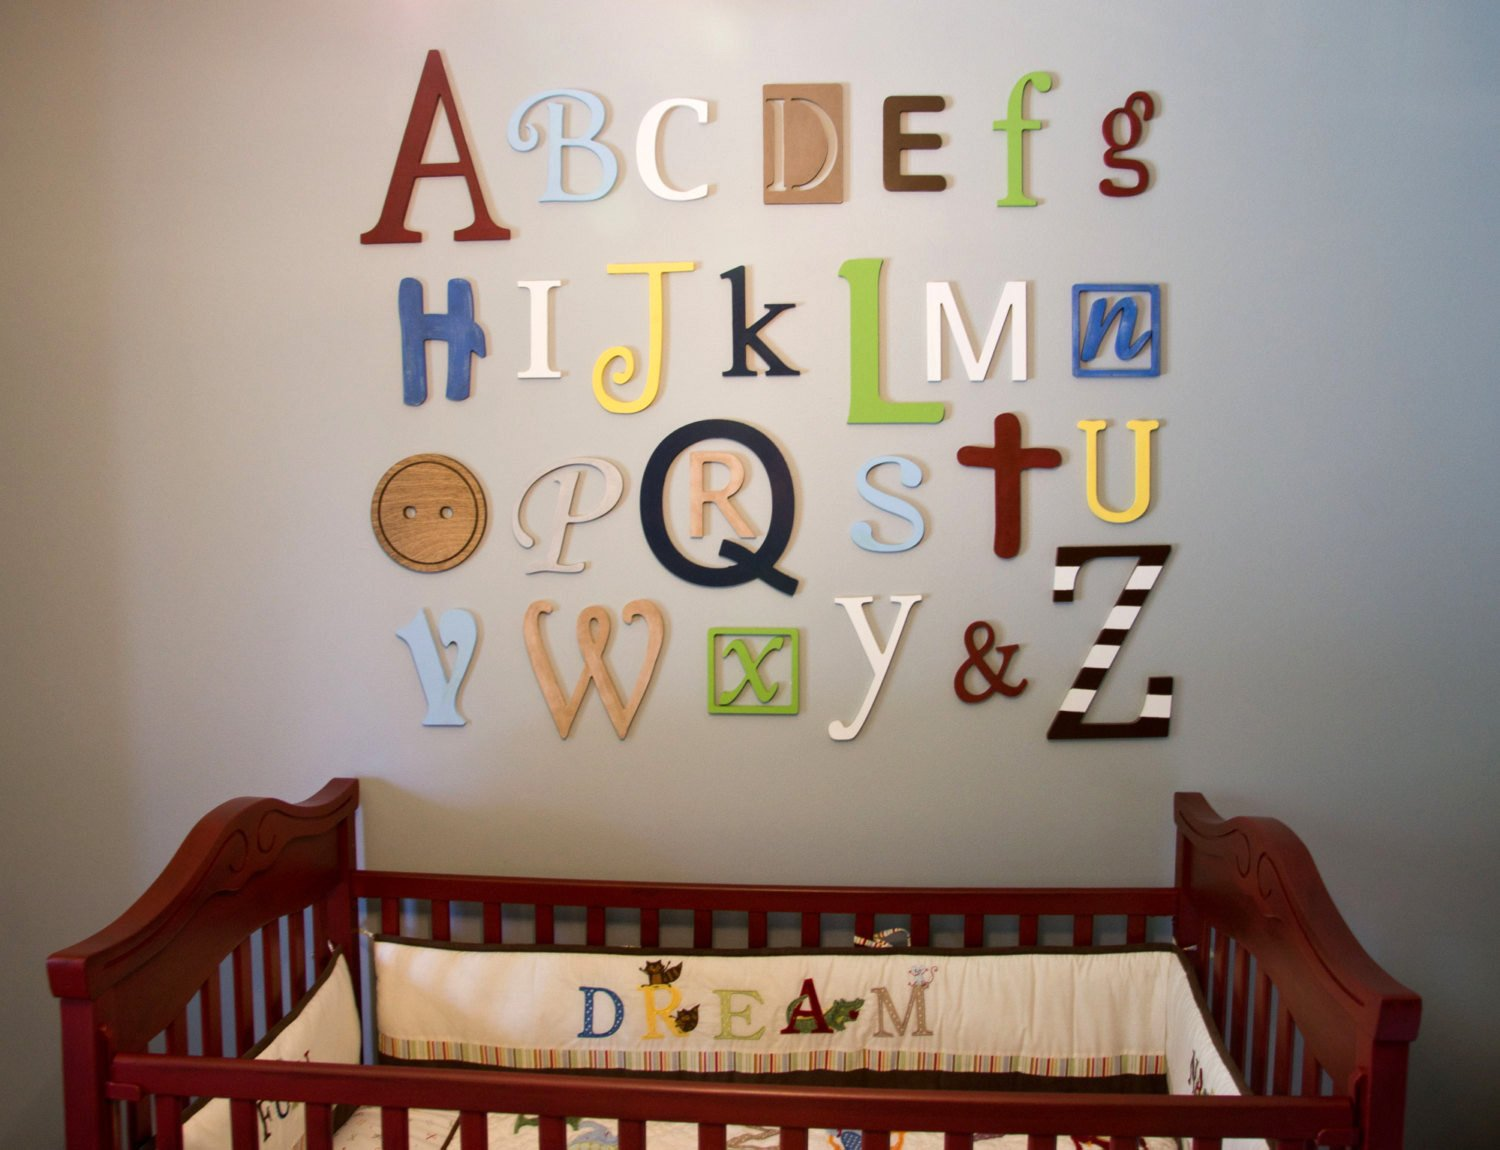 Painted Wooden Alphabet Letters Set, Nursery Wall Decor, Playroom Letters, Wall Hanging, Nursery Decor, Alphabet Wall, ABC Wall, Mixed, Painted Letters, ABC Wall Decor by Acharmed Monograms